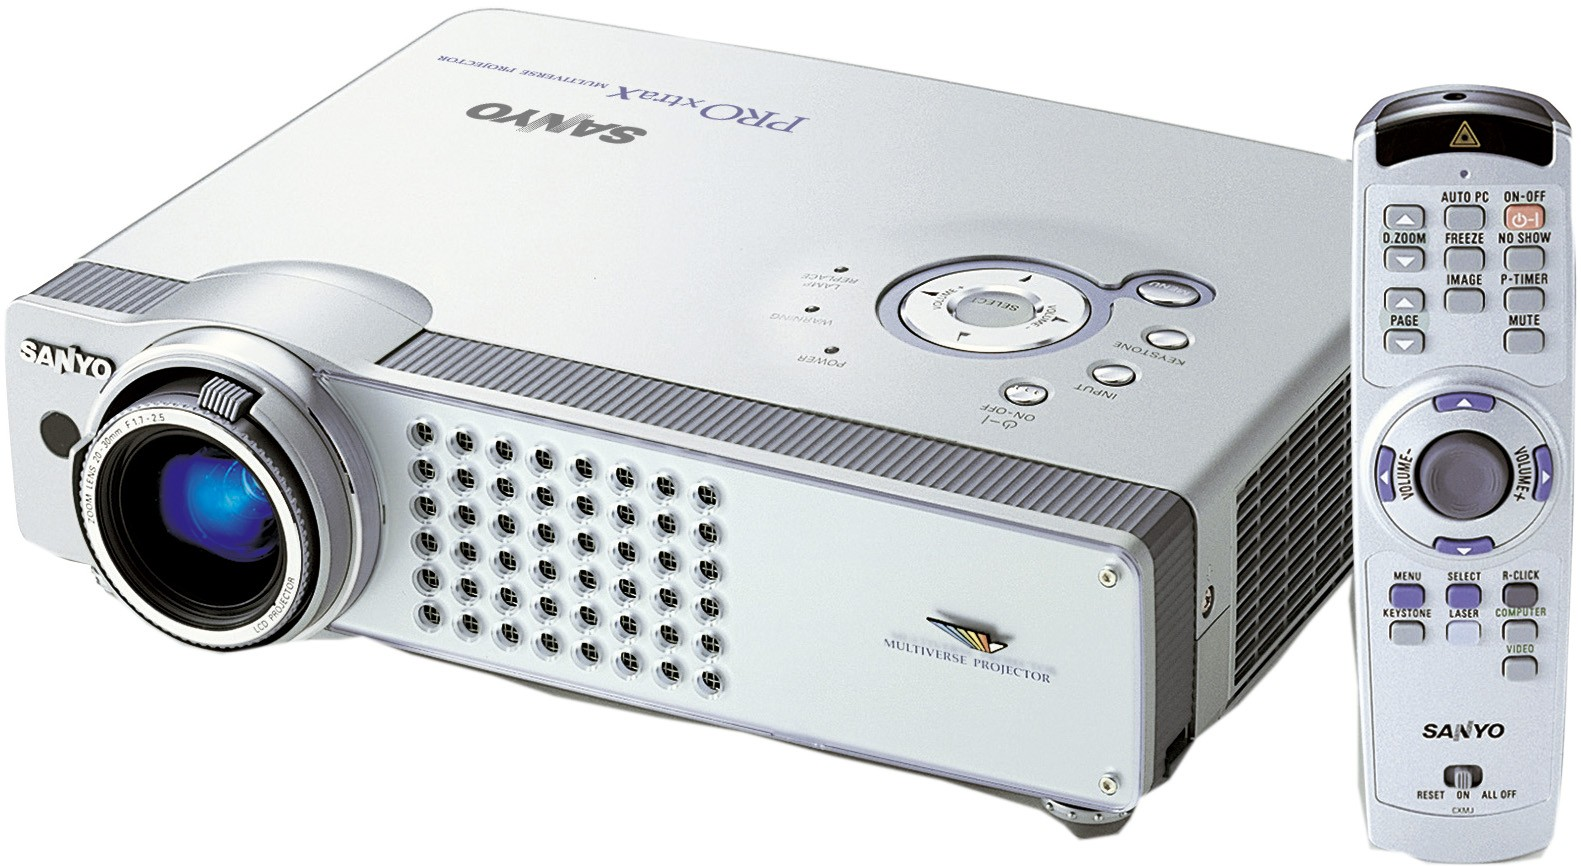 Easy Instructions For Replacing The Sanyo Plc Su51